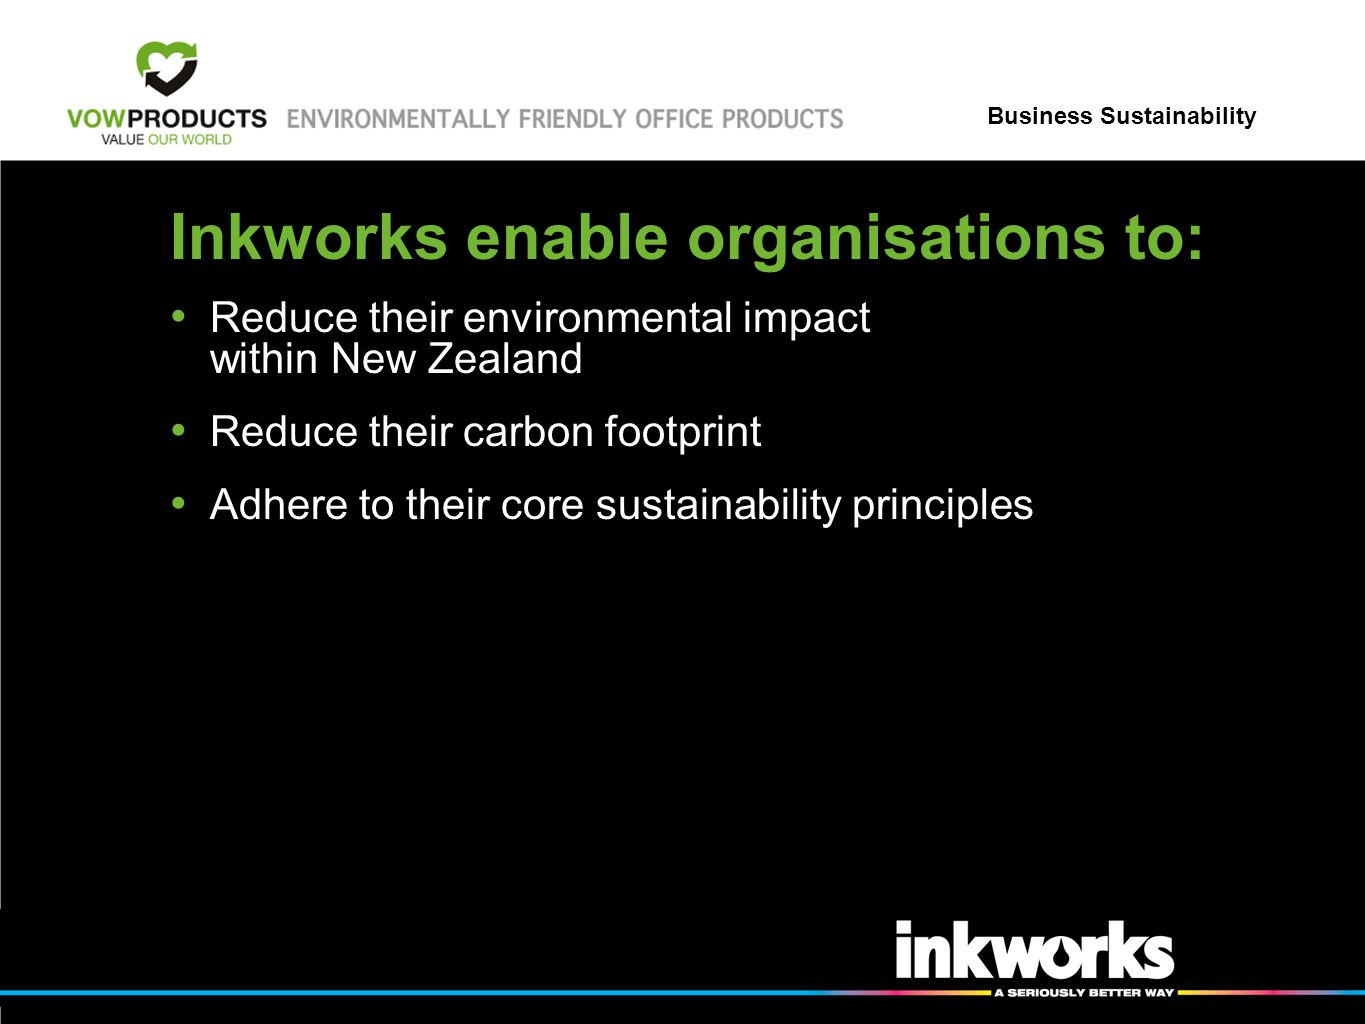 Business Sustainability Inkworks enable organisations to: Reduce their environmental impact within New Zealand Reduce their carbon footprint Adhere to their core sustainability principles